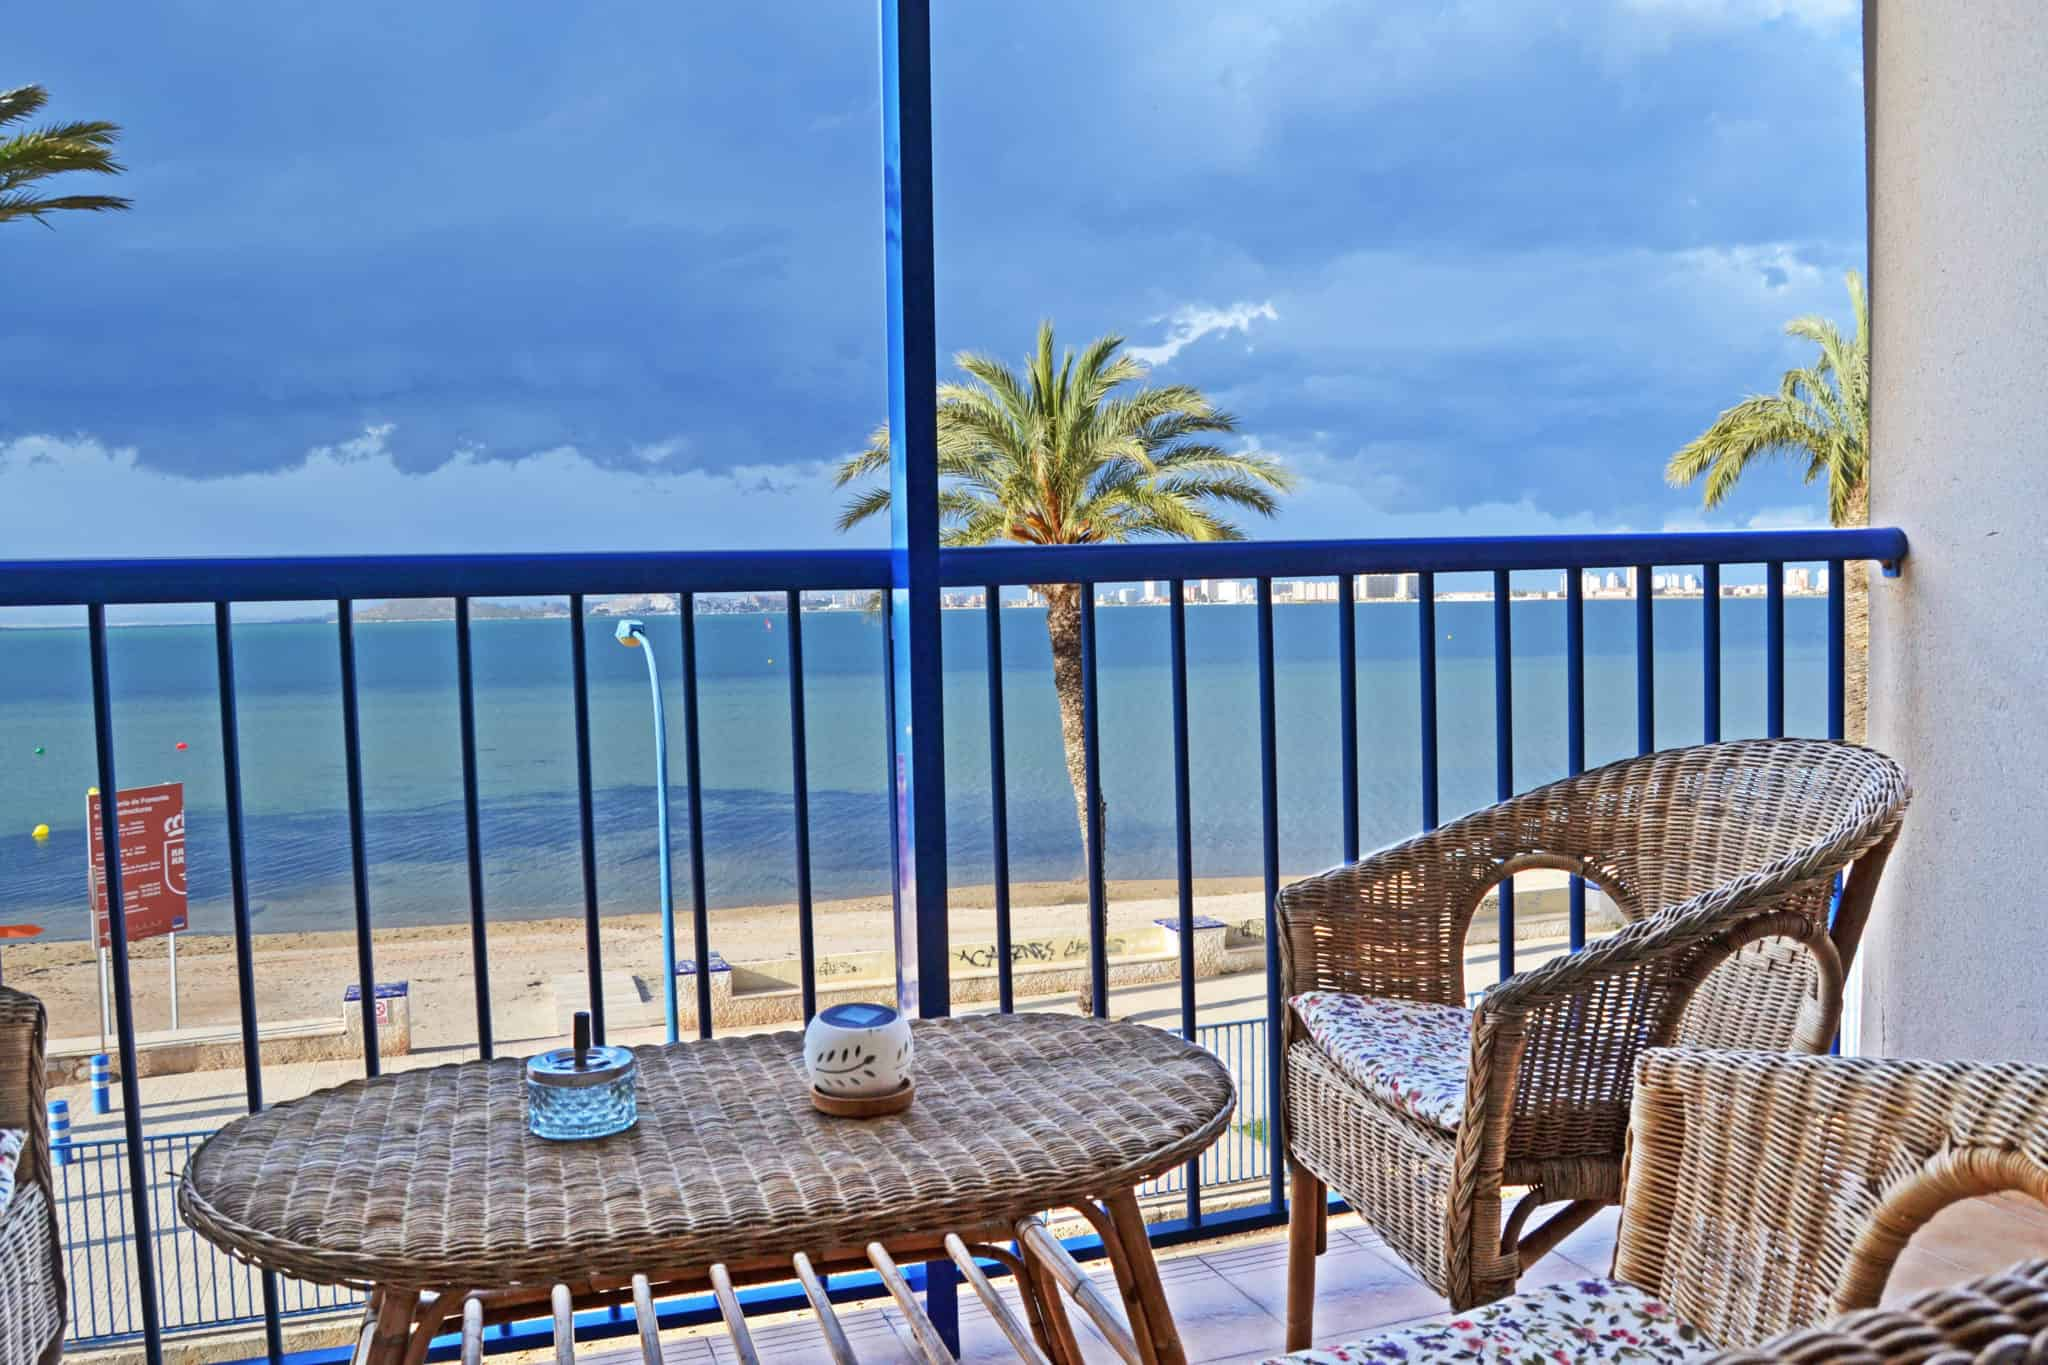 Enjoy the view from your balcony